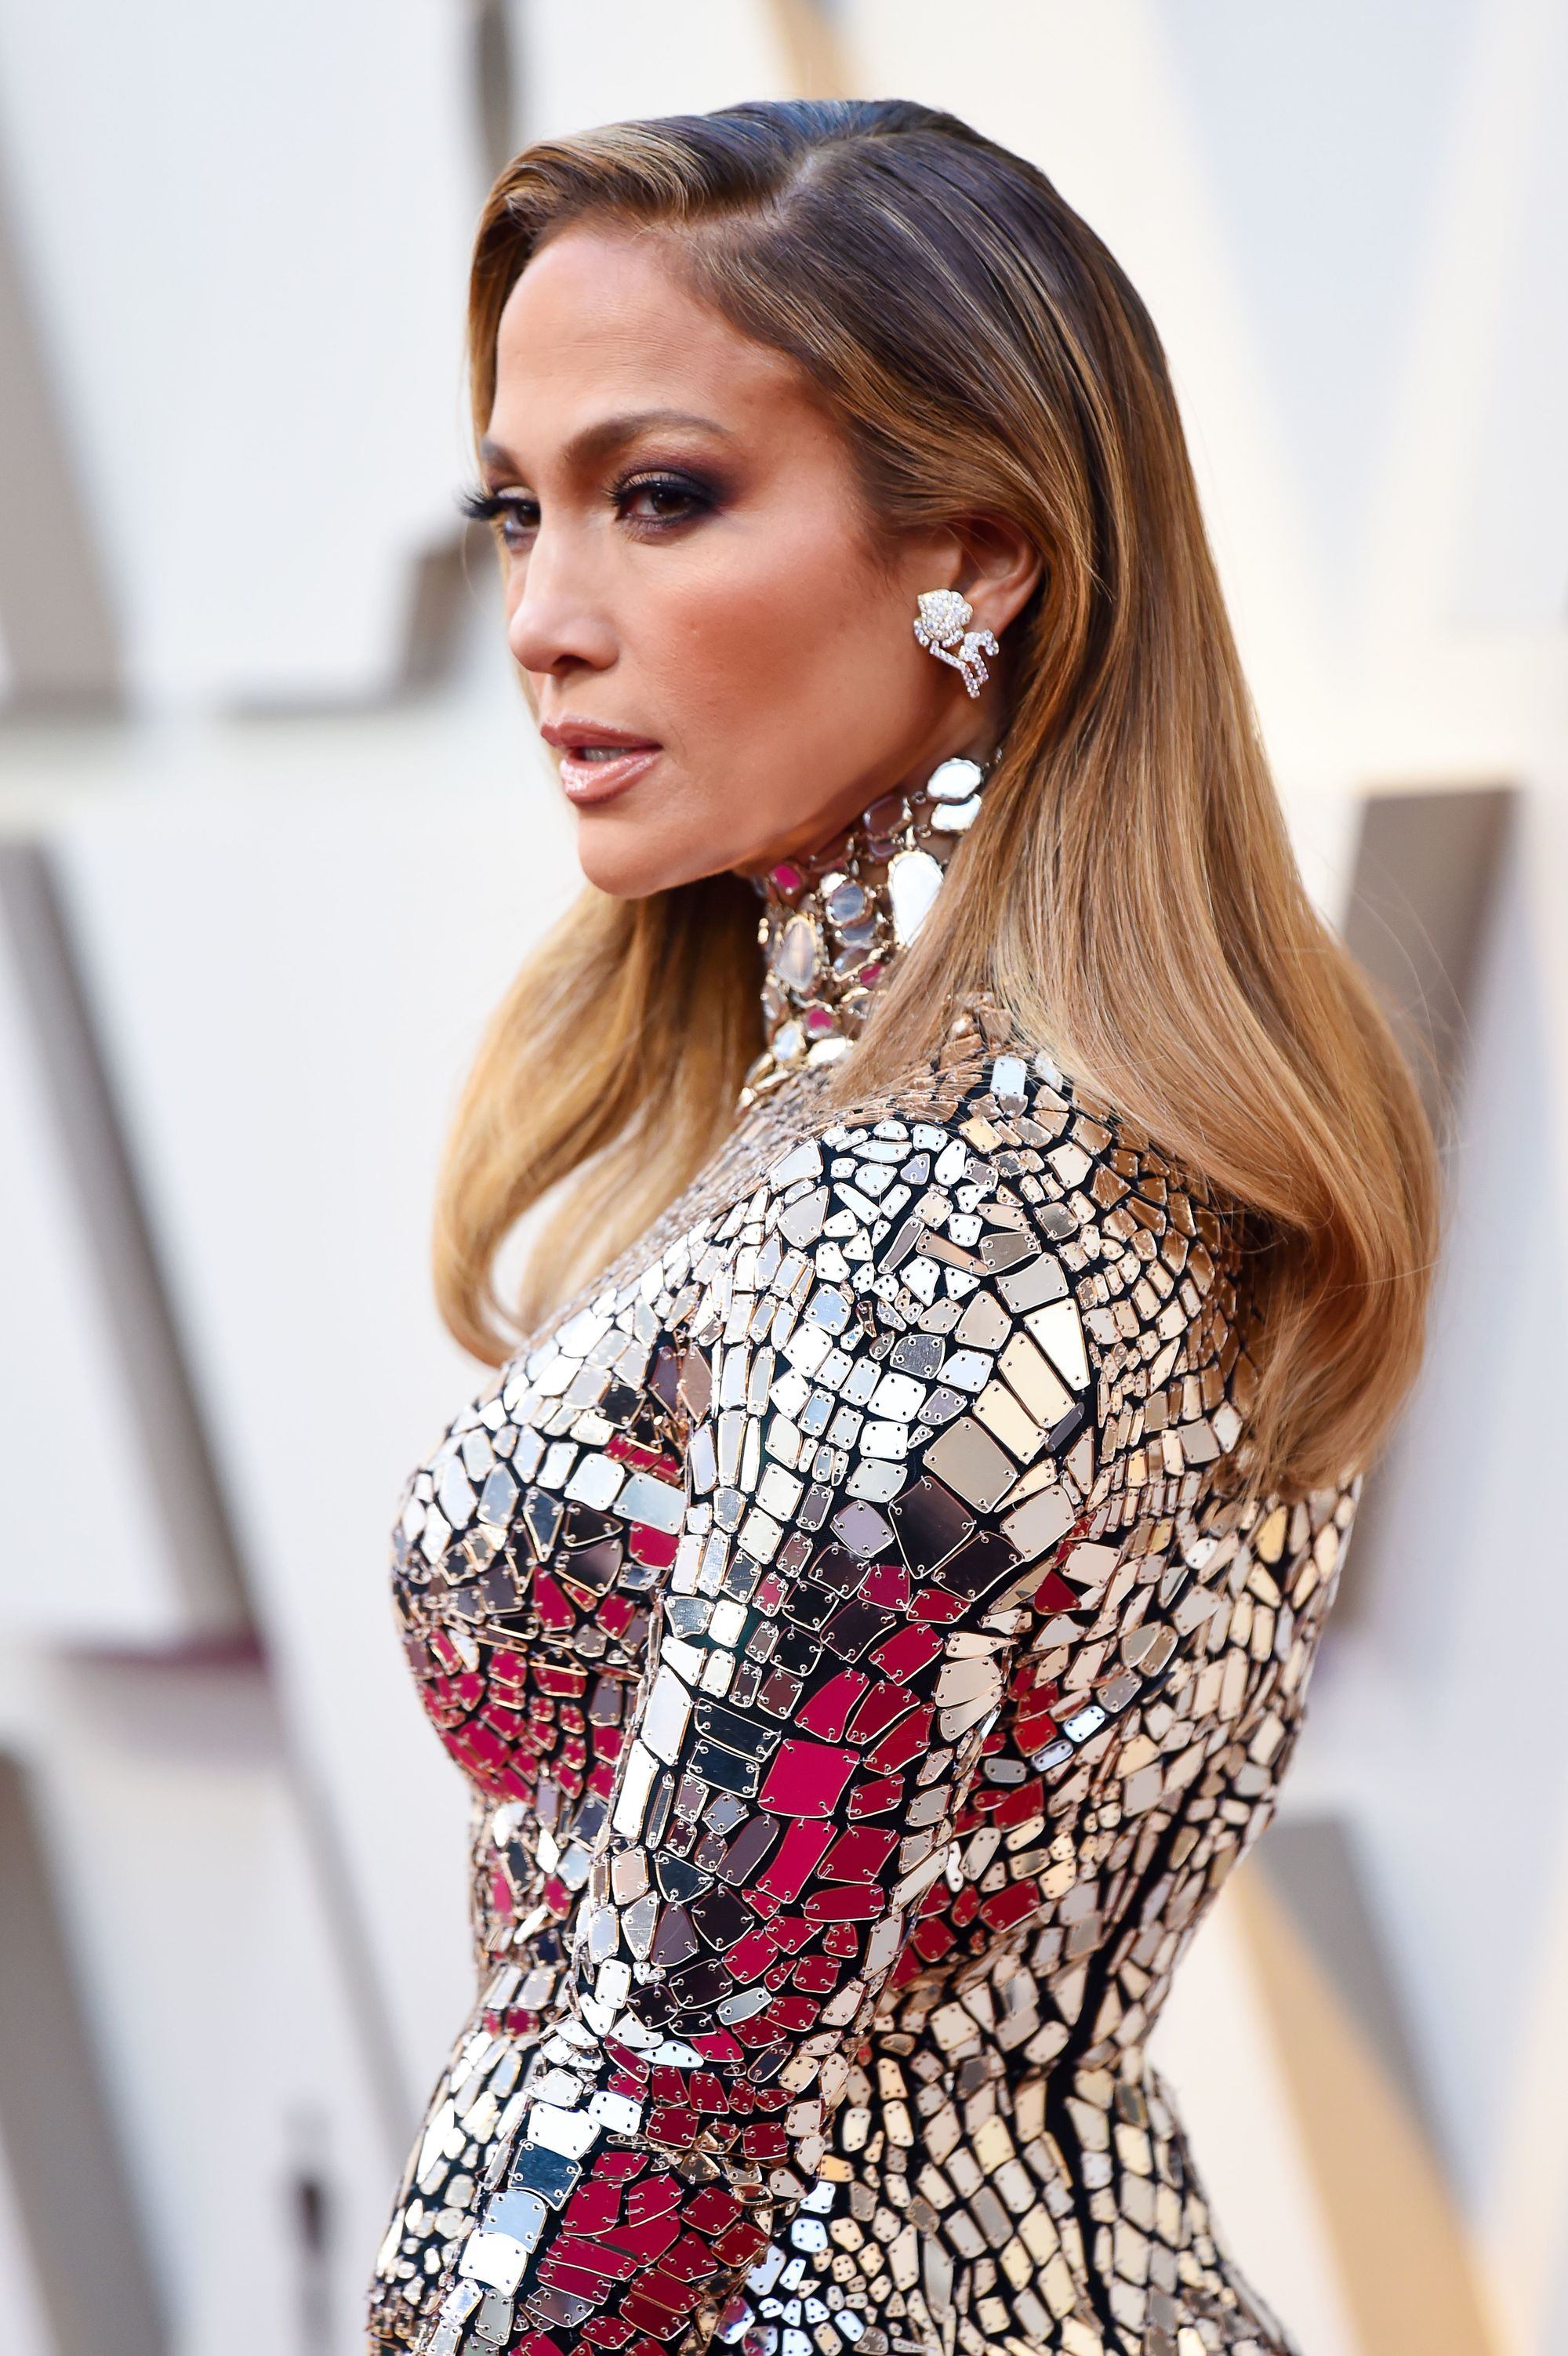 Jennifer Lopez on the red carpet with long, sleek dark to light caramel hair, wearing glittery outfit on the red carpet